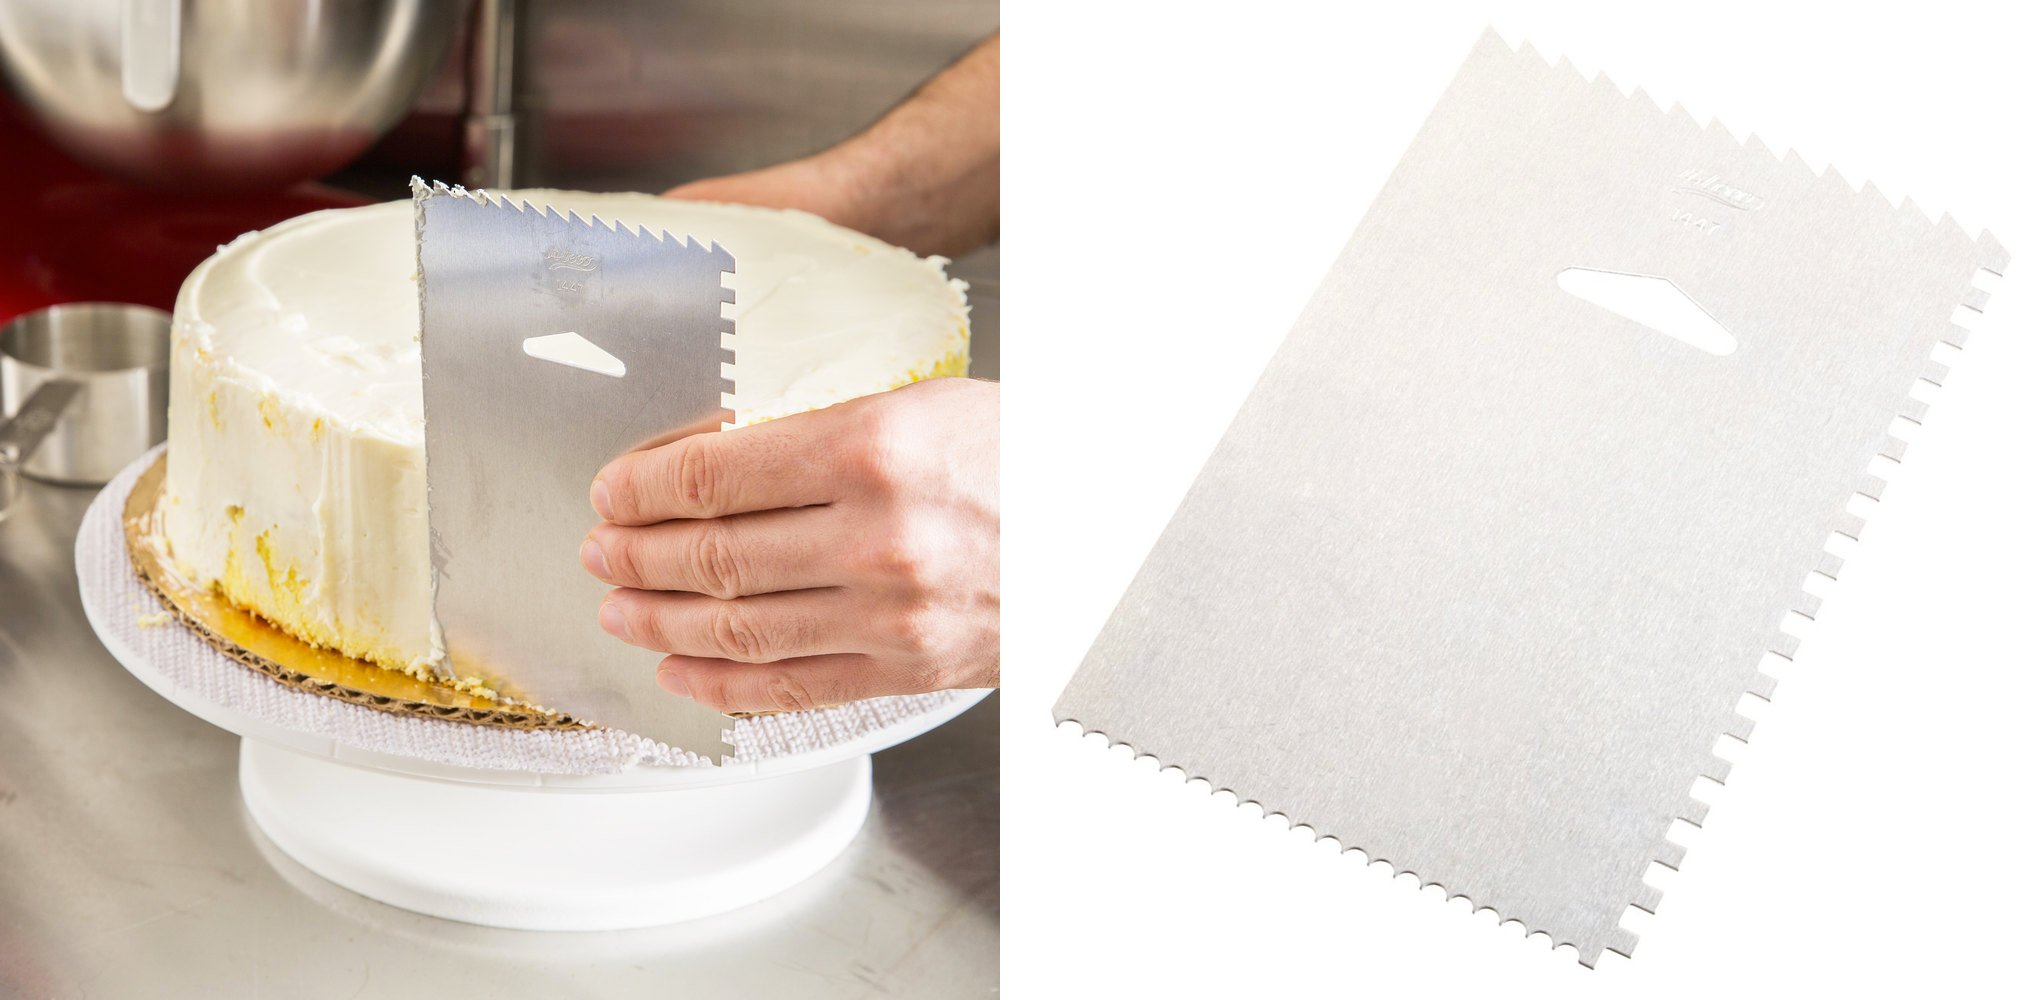 Best Baking Gadgets Decorate Cakes Cupcakes Decorating Comb and Icing Smoother